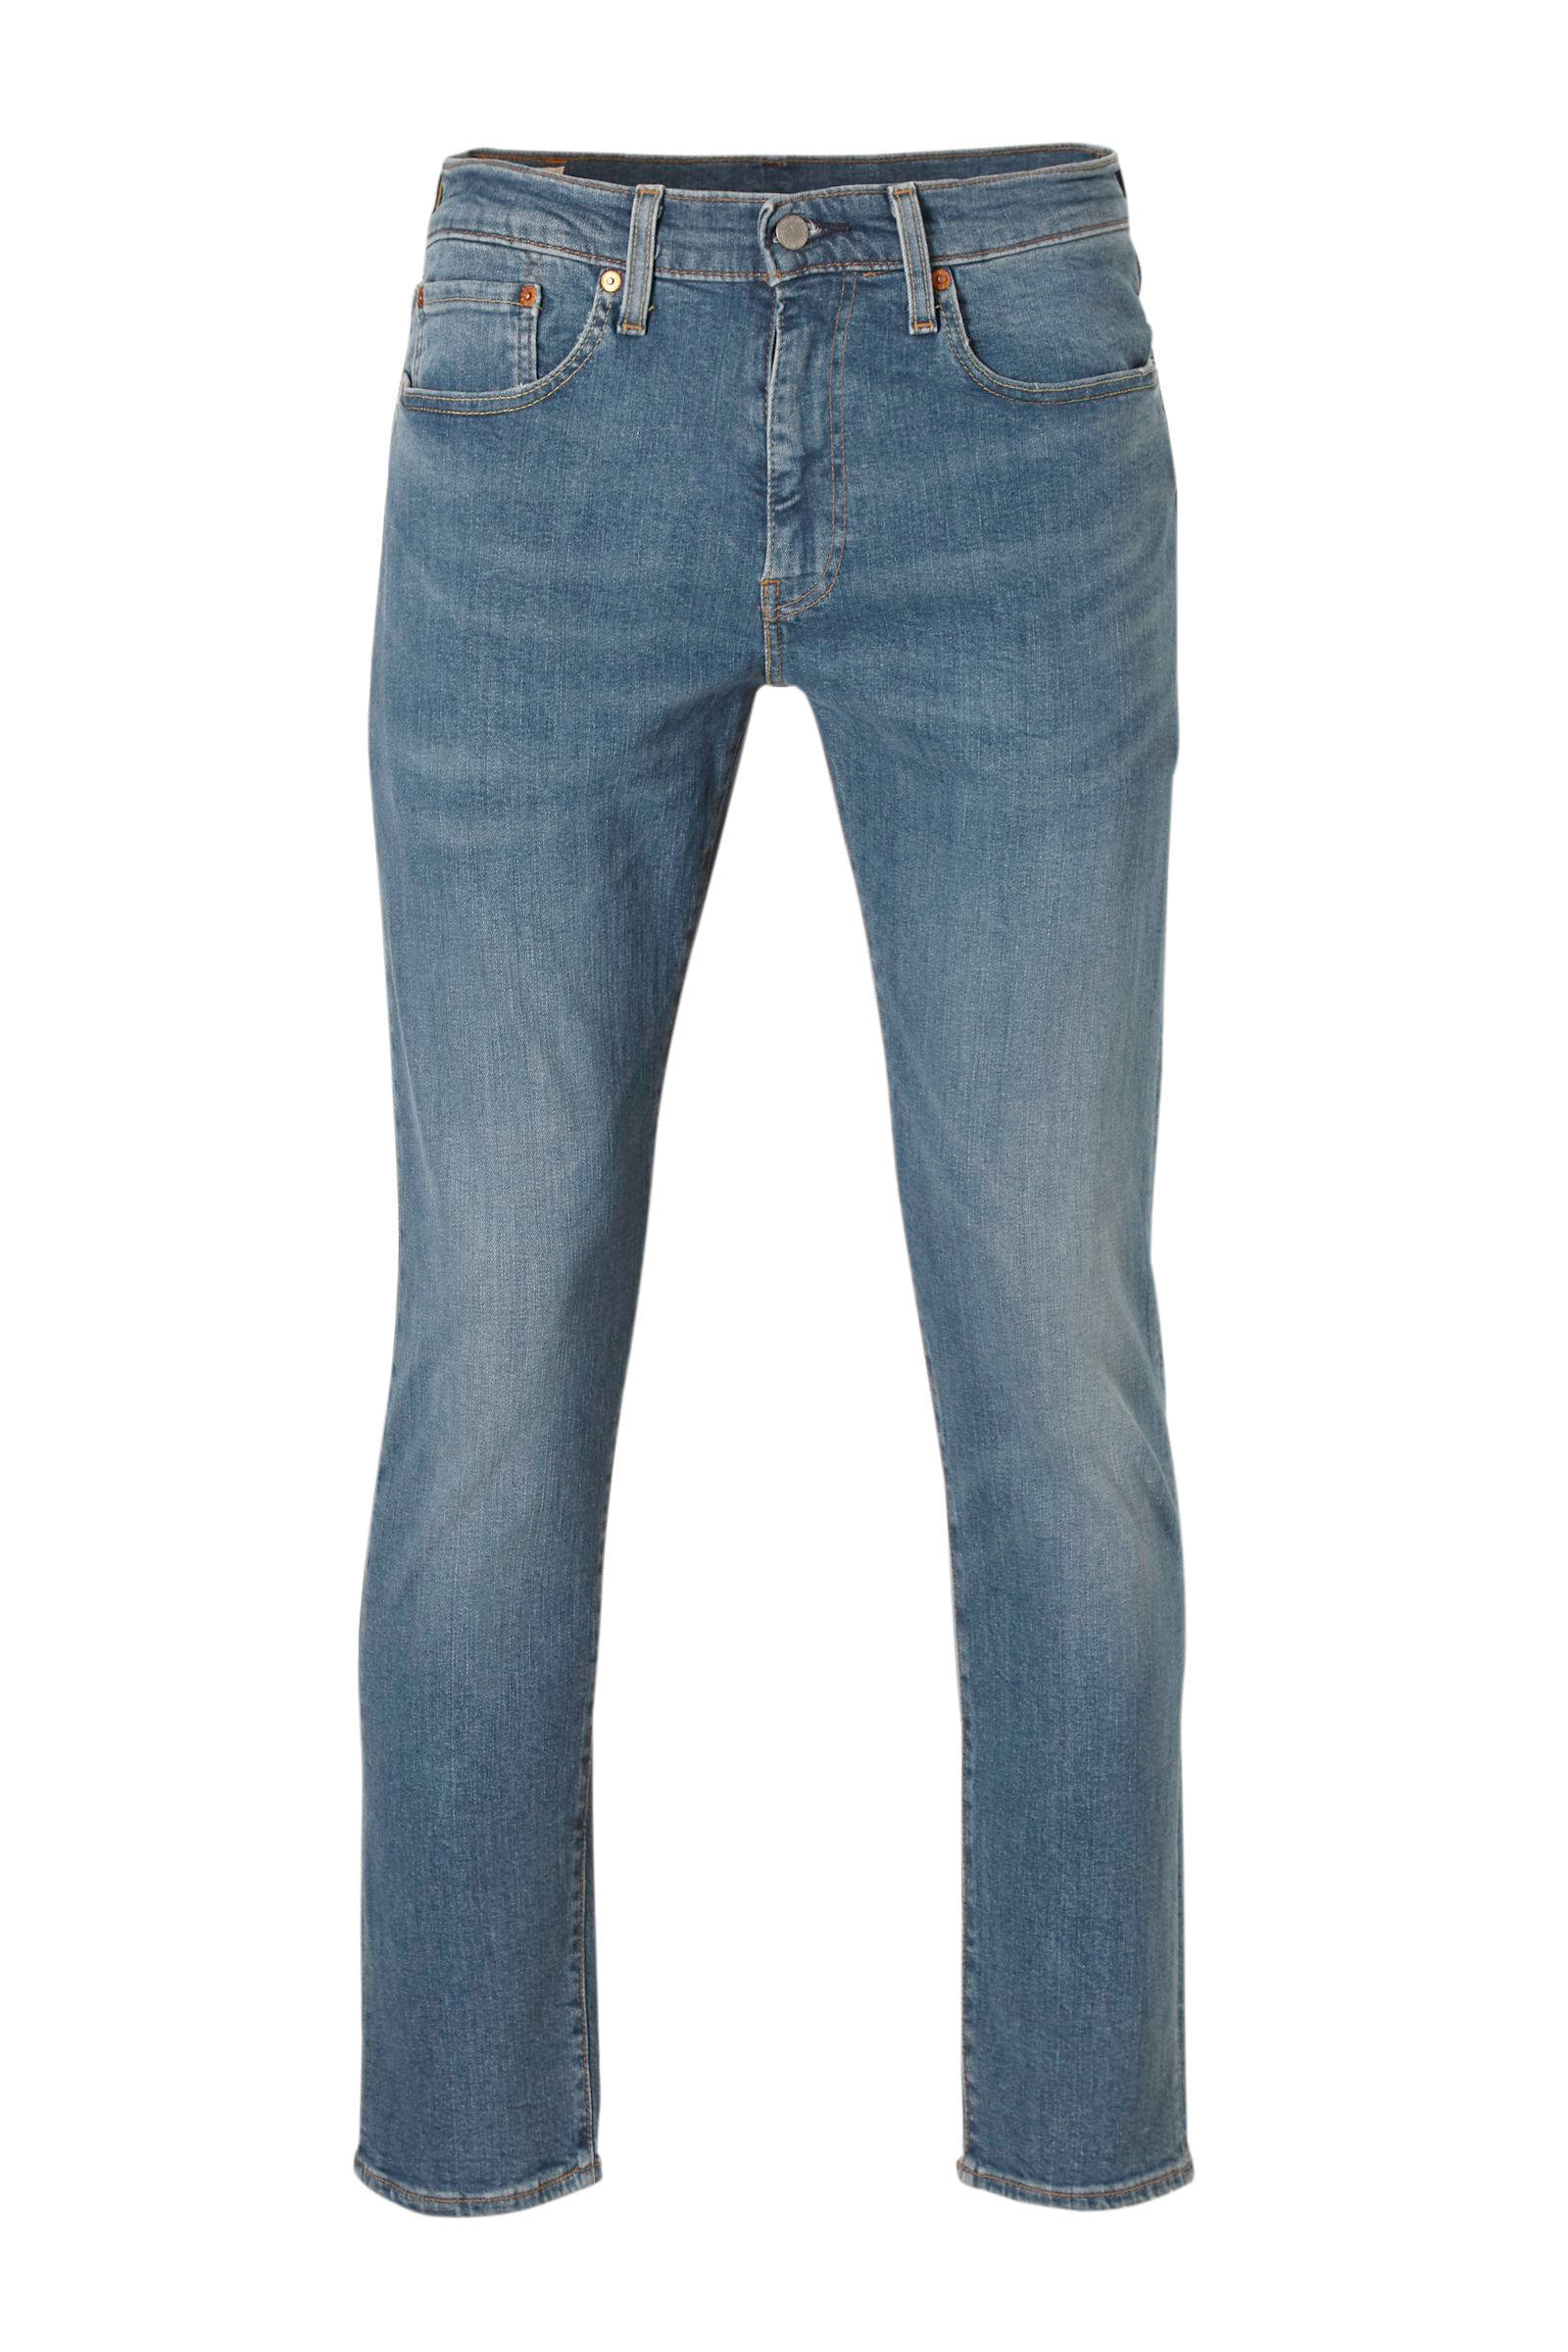 Levi's 502 regular taper jeans (heren)